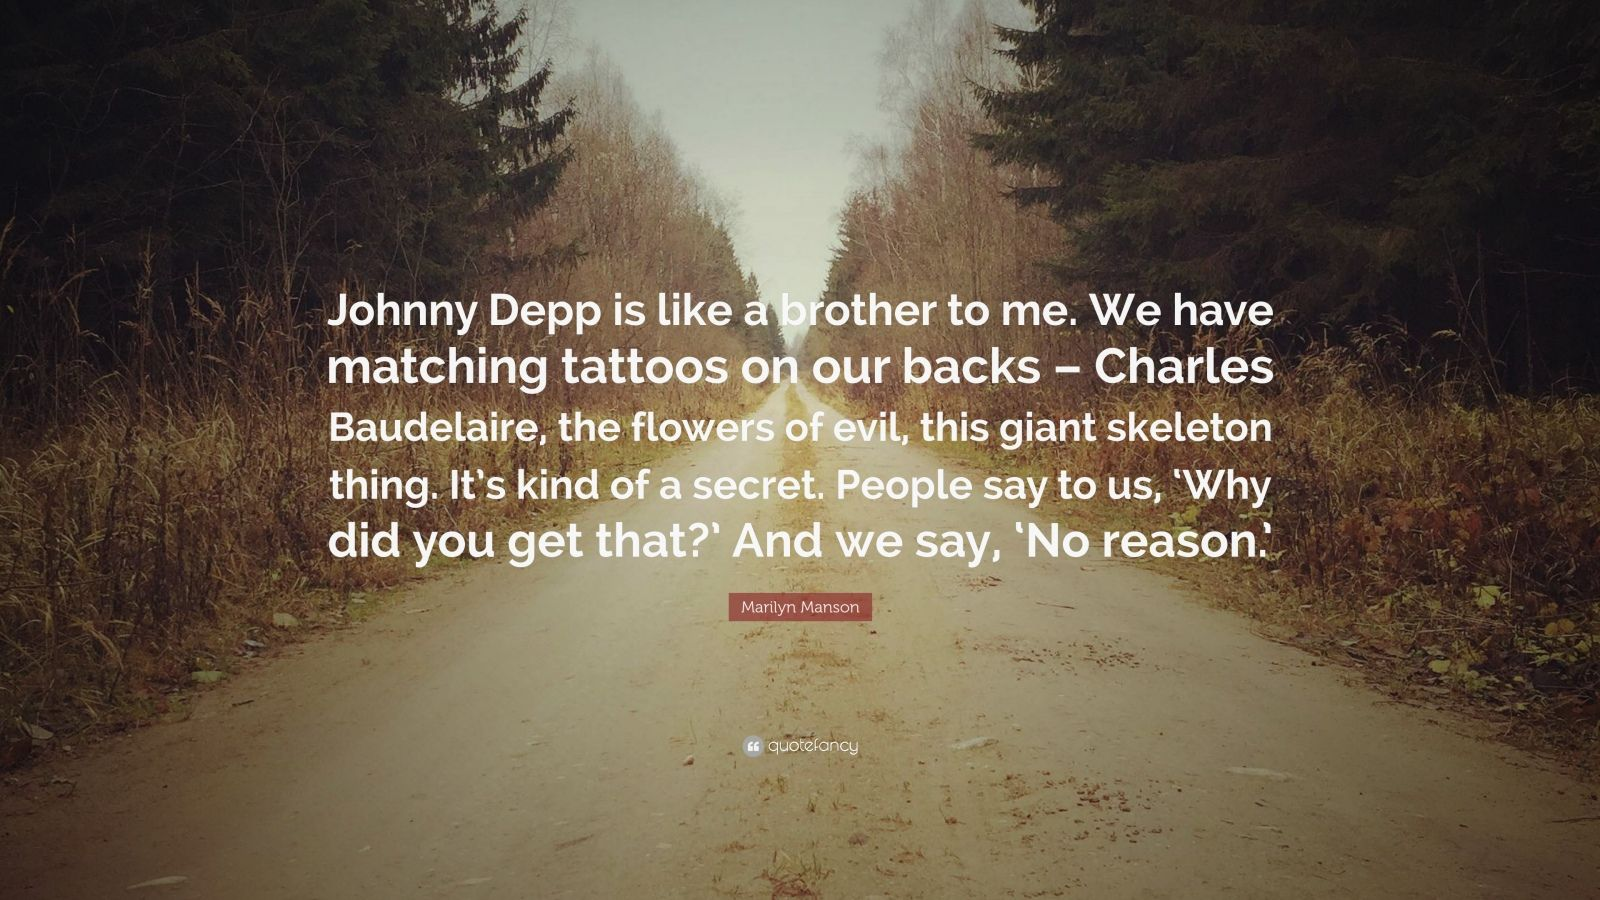 "Marilyn Manson Quote: ""Johnny Depp is like a brother to me. We have matching tattoos on our backs – Charles Baudelaire, the flowers of evil, this giant skeleton thing. It's kind of a secret. People say to us, 'Why did you get that?' And we say, 'No reason.'"""